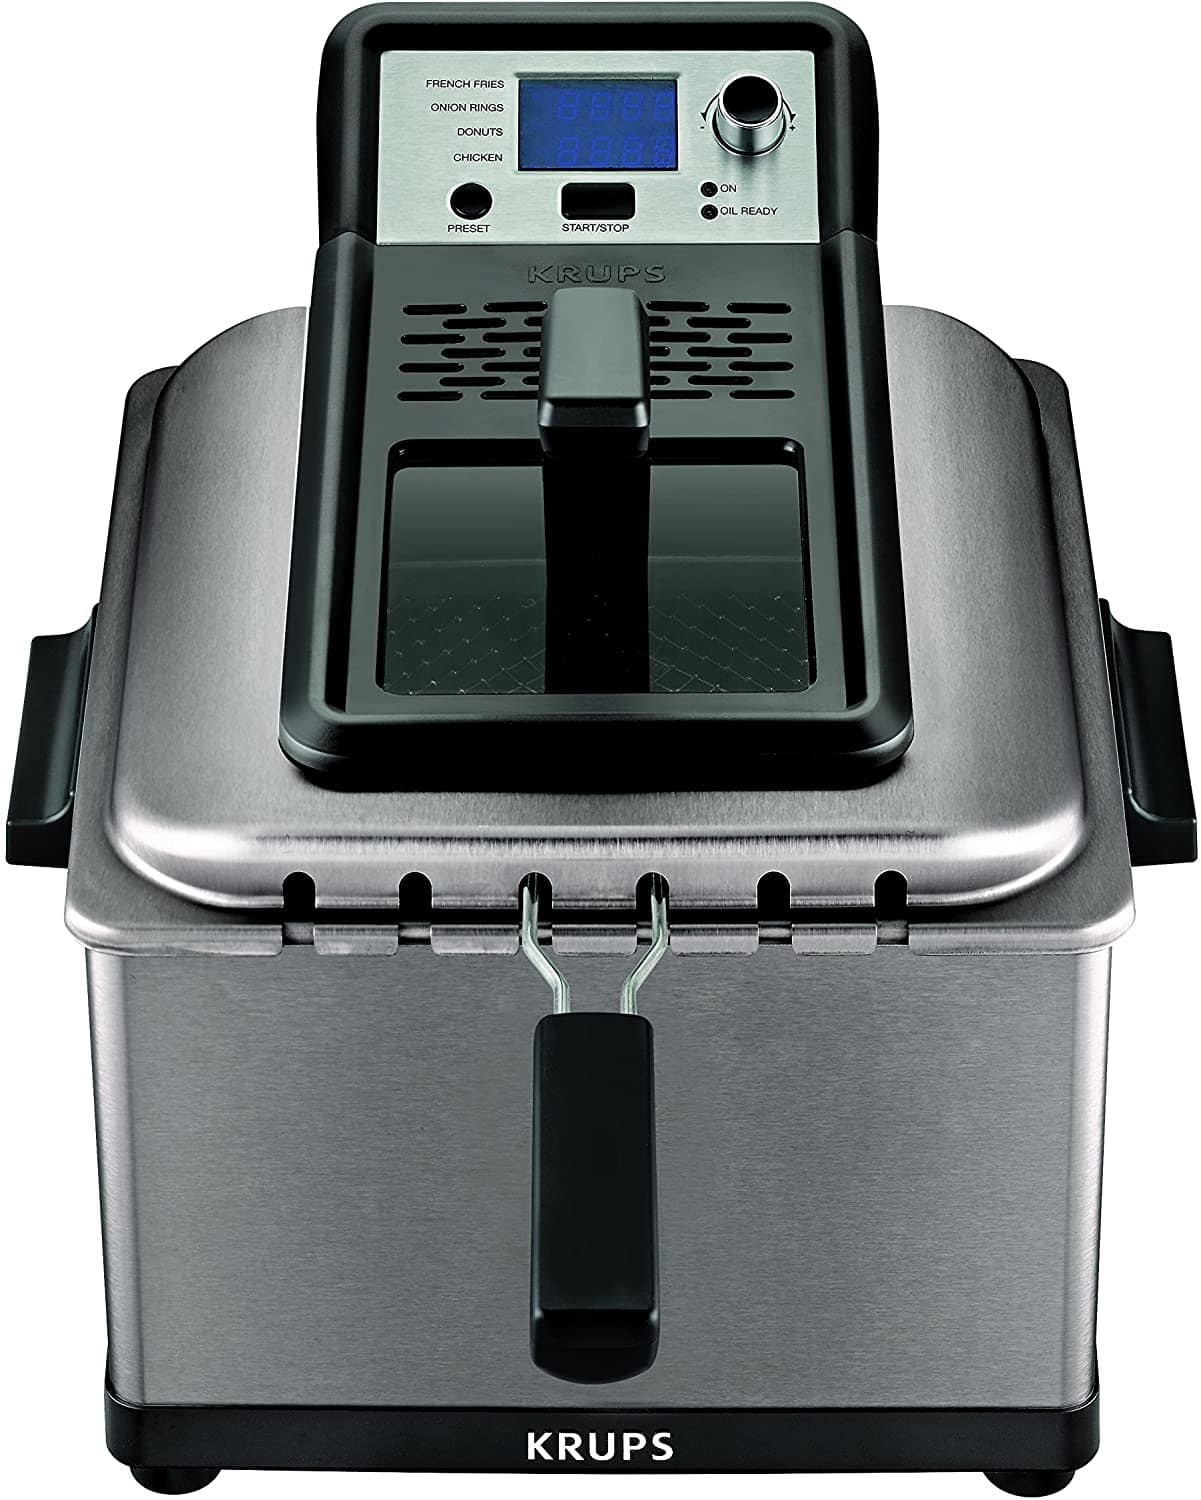 KRUPS Stainless Steel Electric Deep Fryer